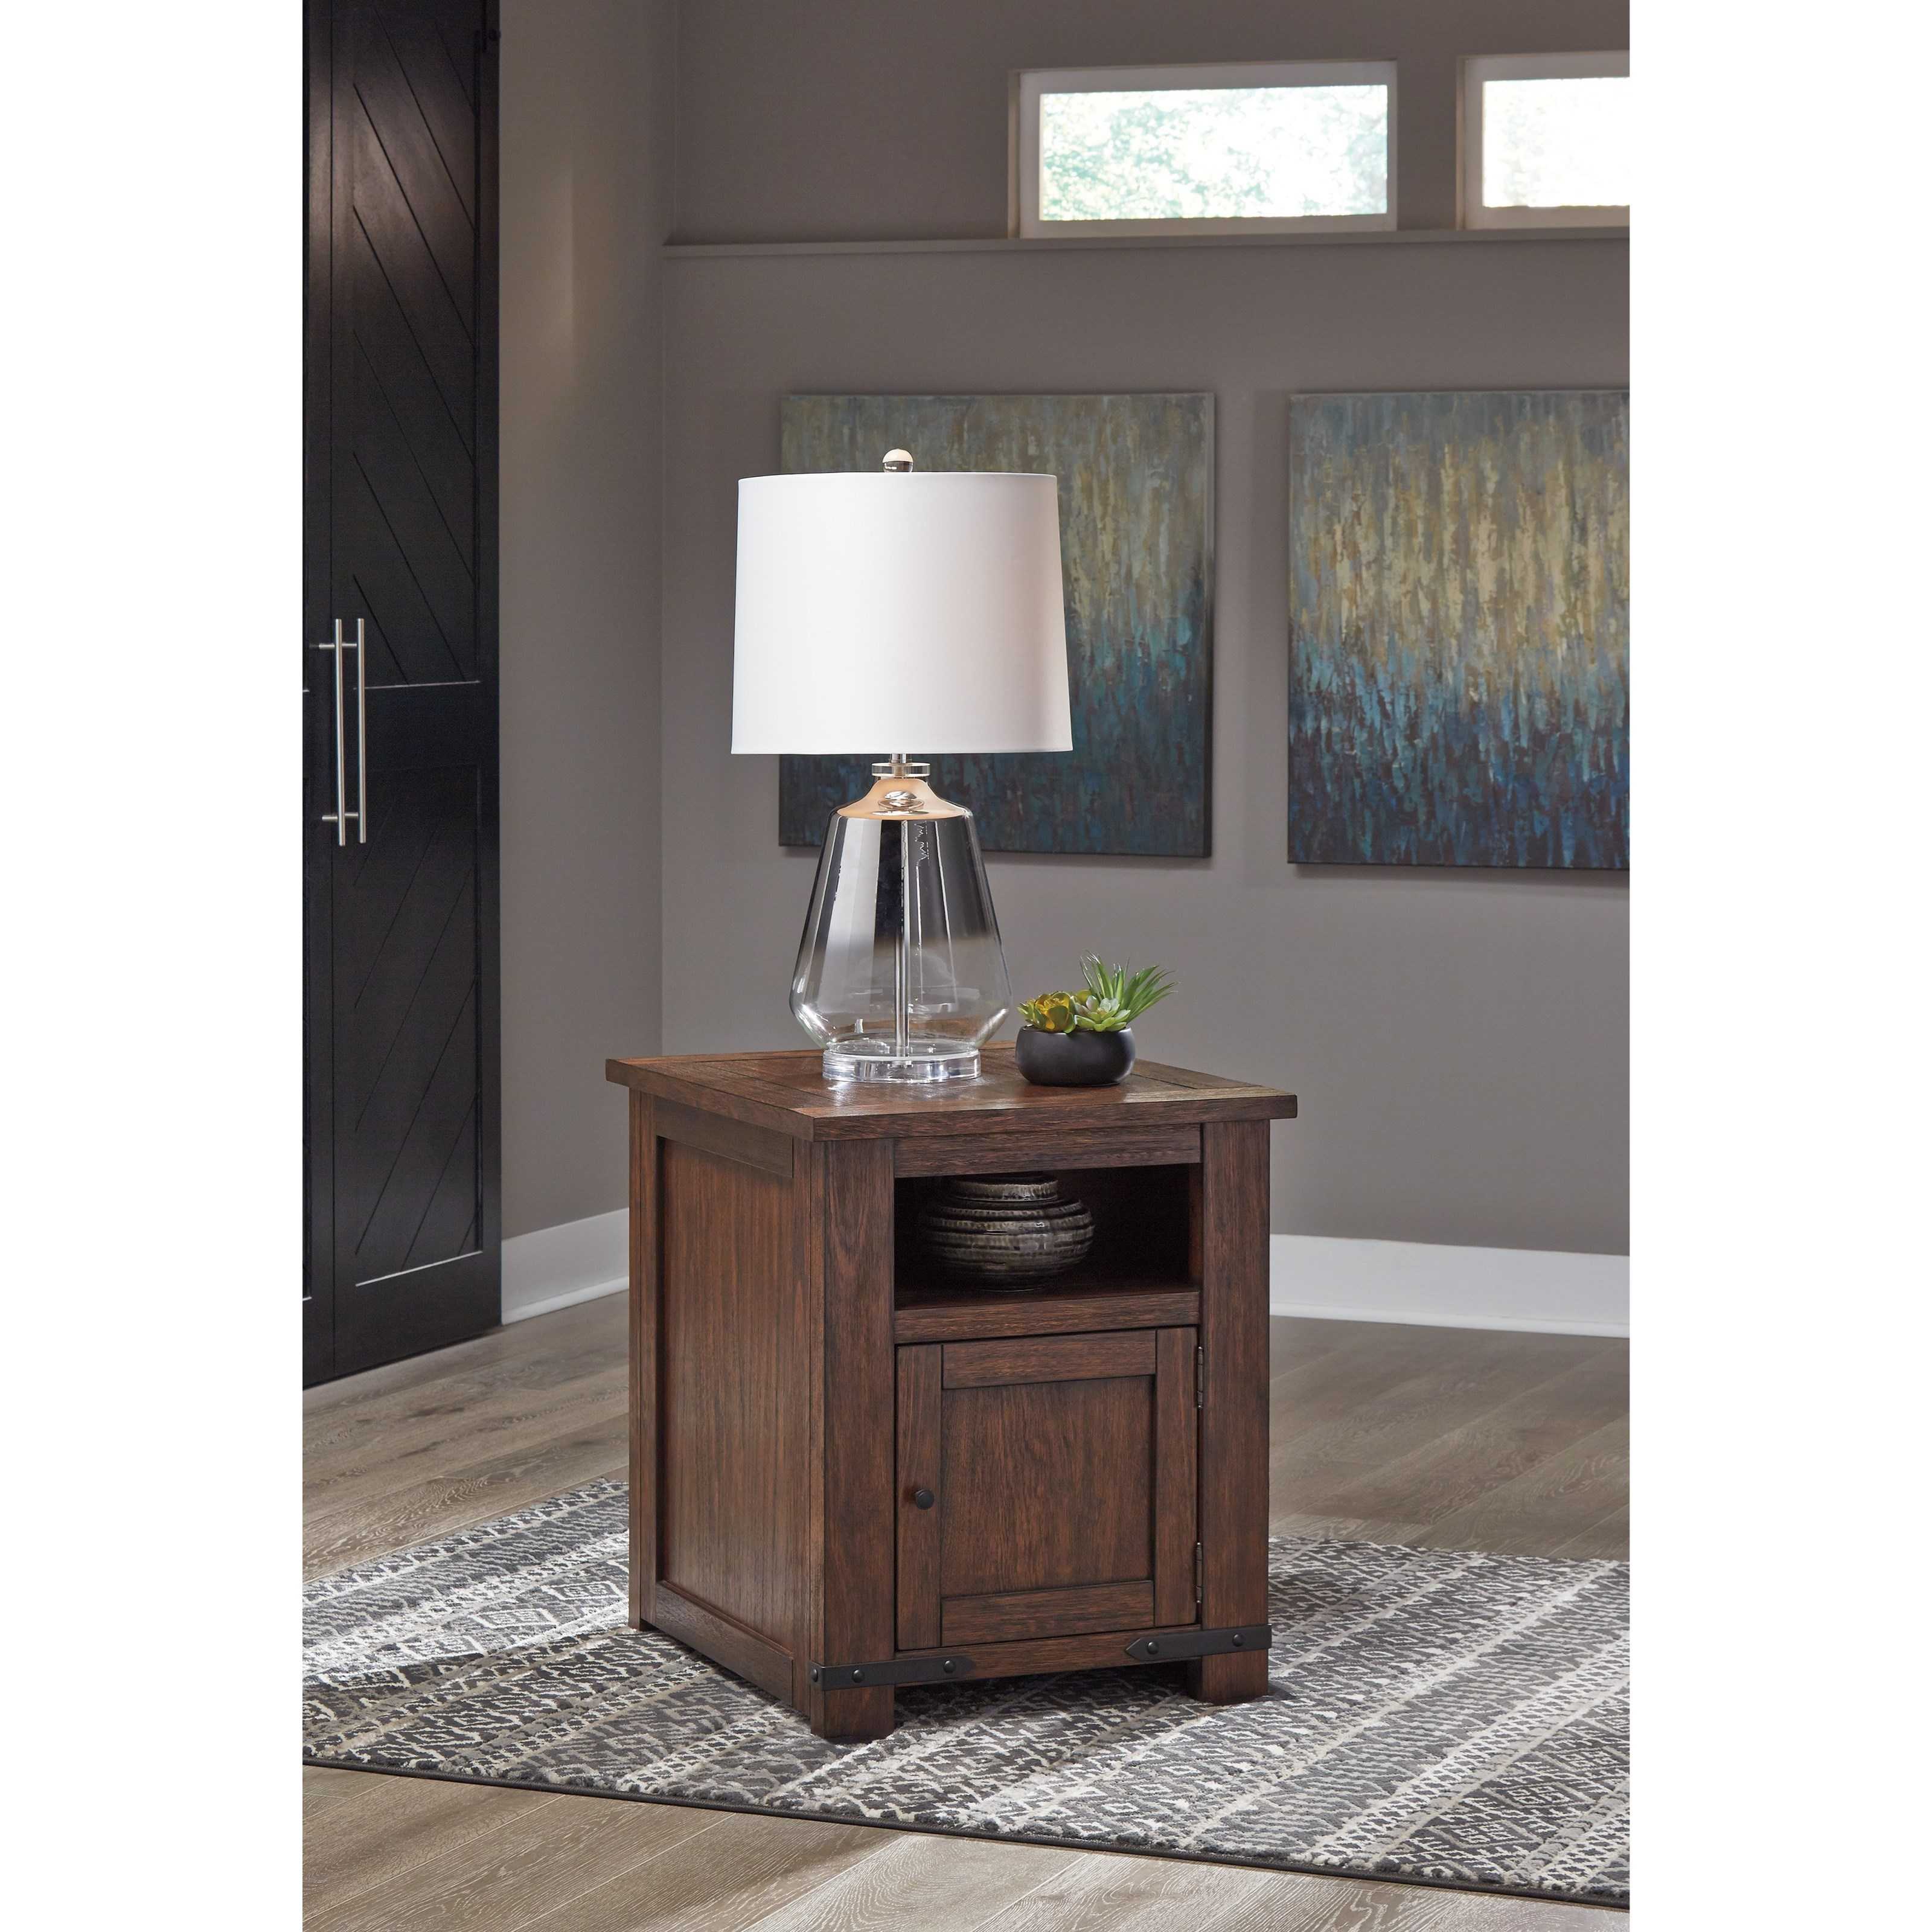 Signature Design By Ashley Budmore Rustic End Table With